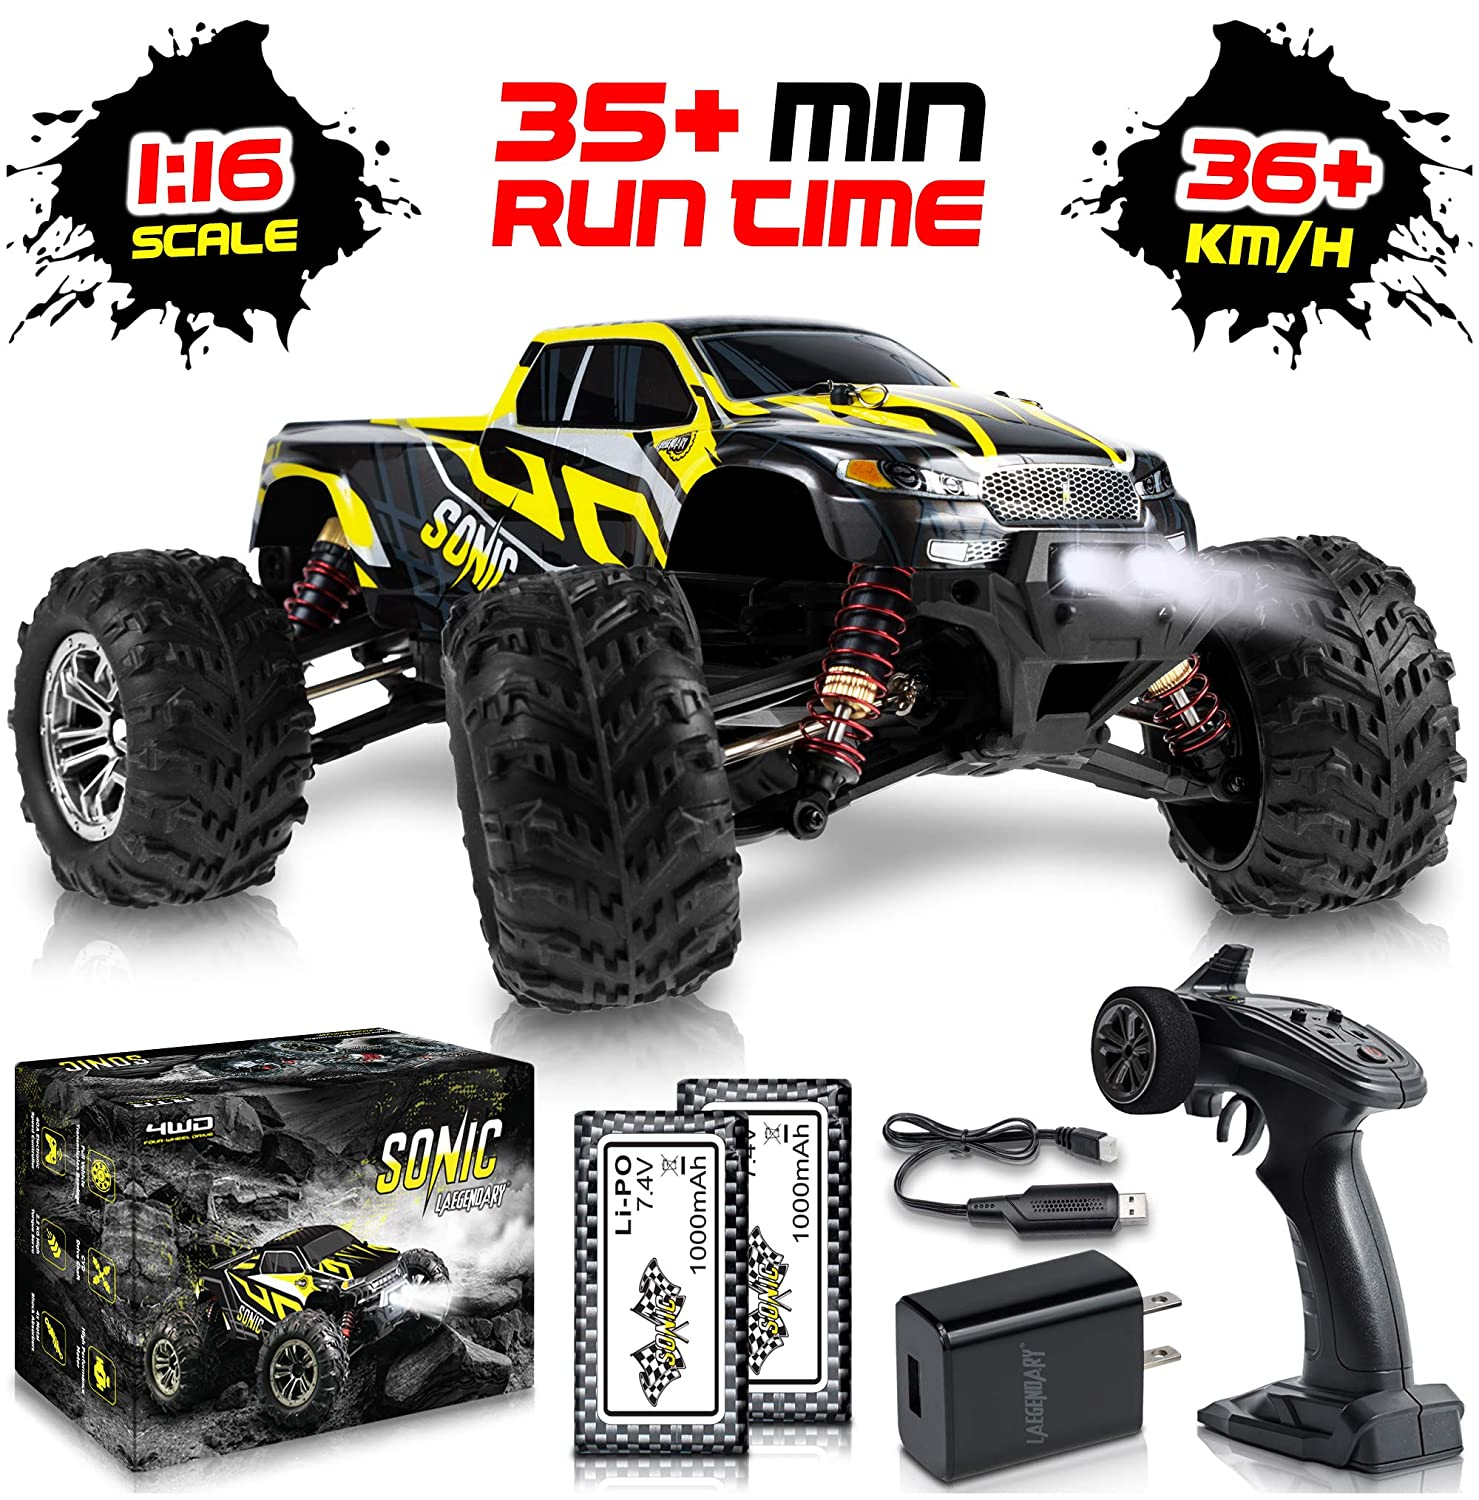 1:16 Scale Large RC Cars 36+ kmh Speed - Boys Remote Control Car 4x4 Off Road Monster Truck Electric - All Terrain Waterproof Toys Trucks for Kids